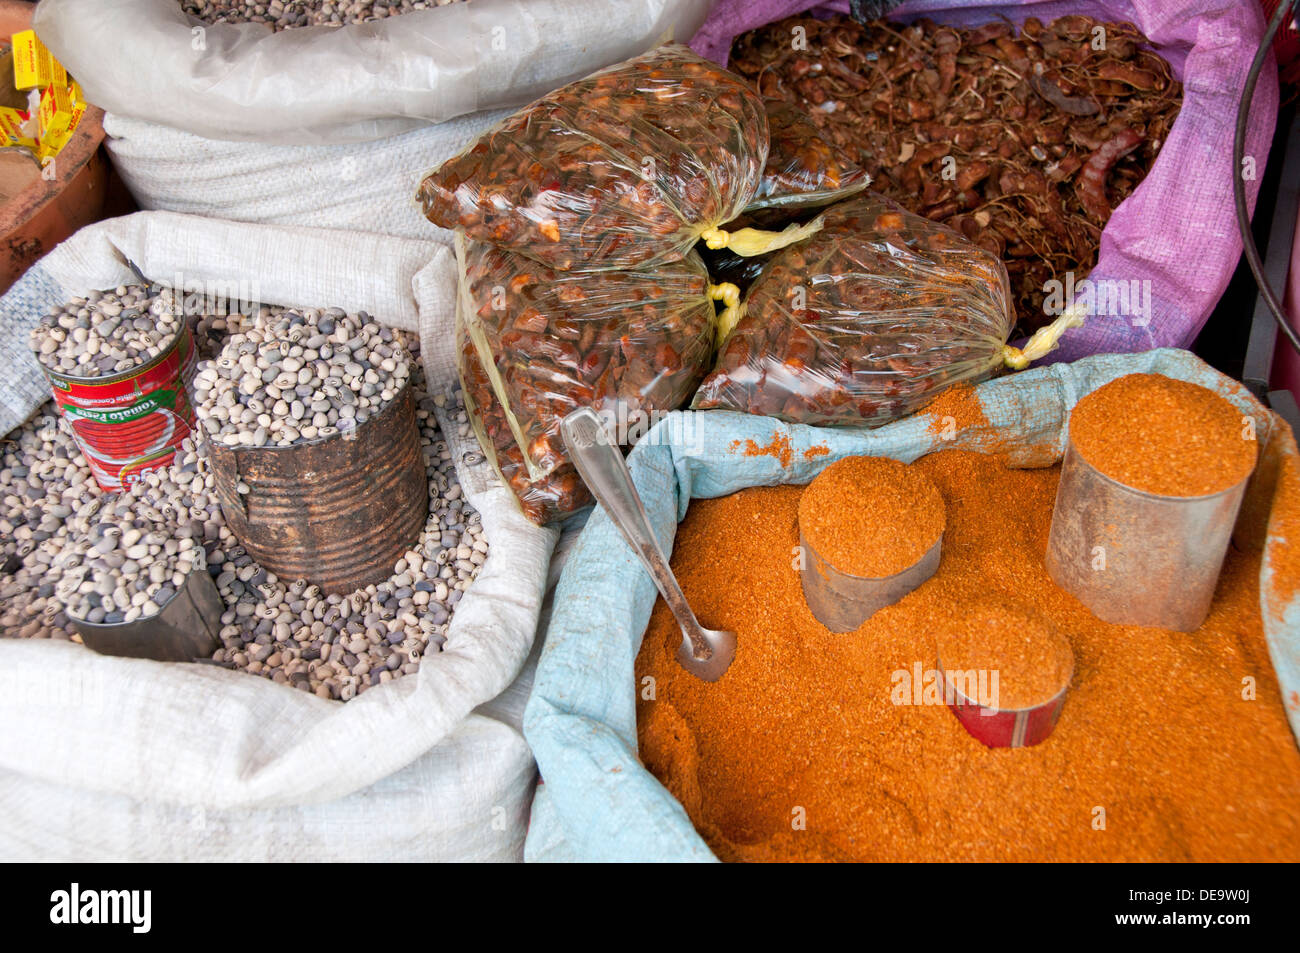 Colourful Spices and Pulses for sale in Sacks, Serrekunda Market, The Gambia, West Africa - Stock Image